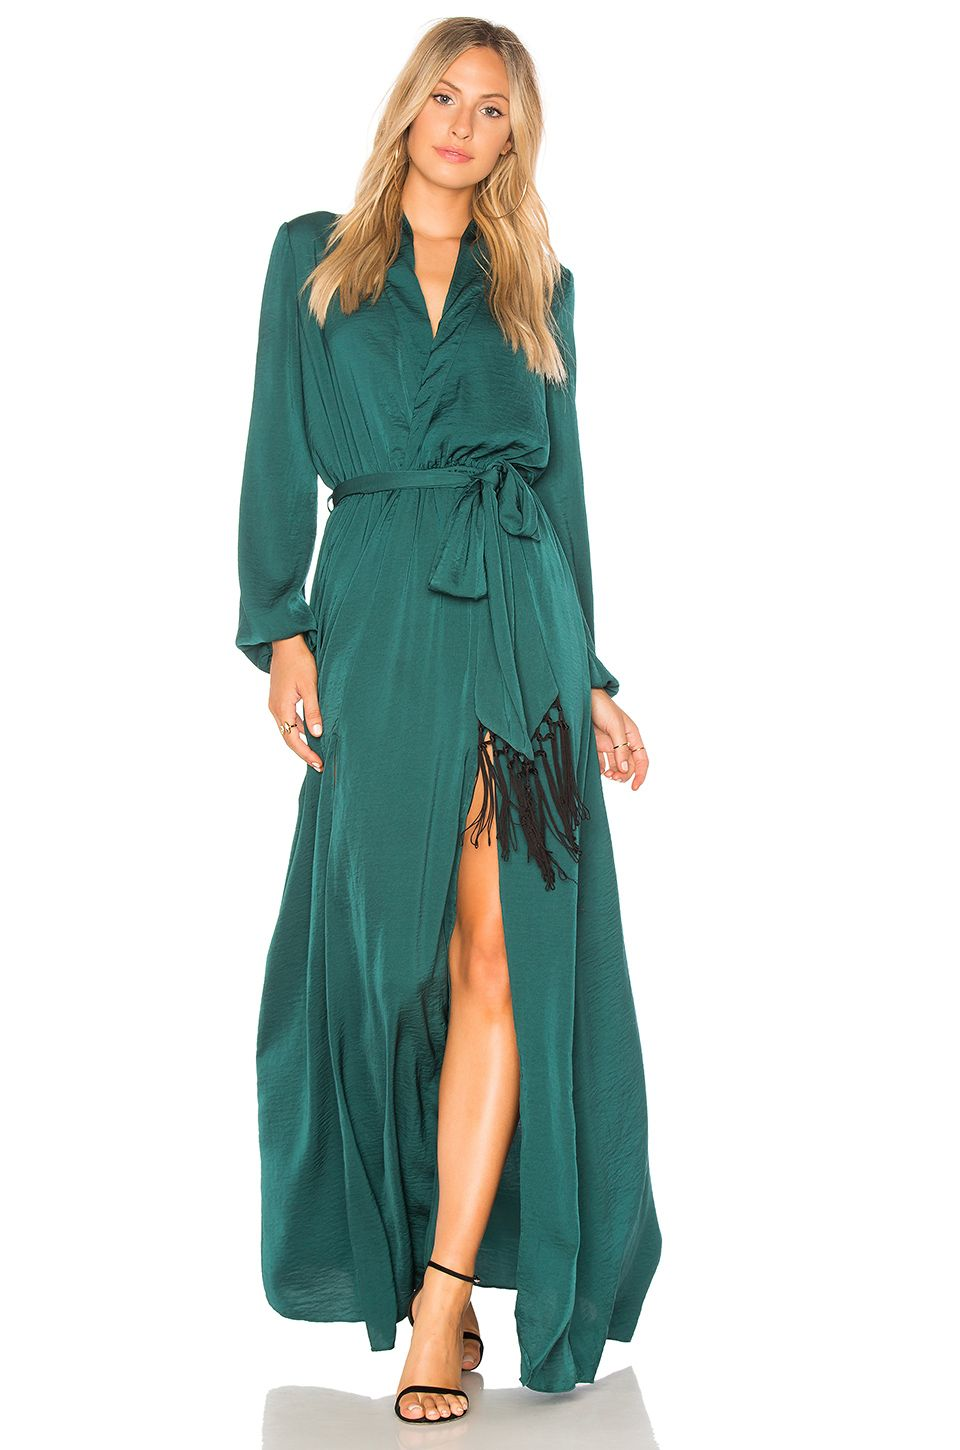 What to wear to a winter wedding - shop wedding guest dresses